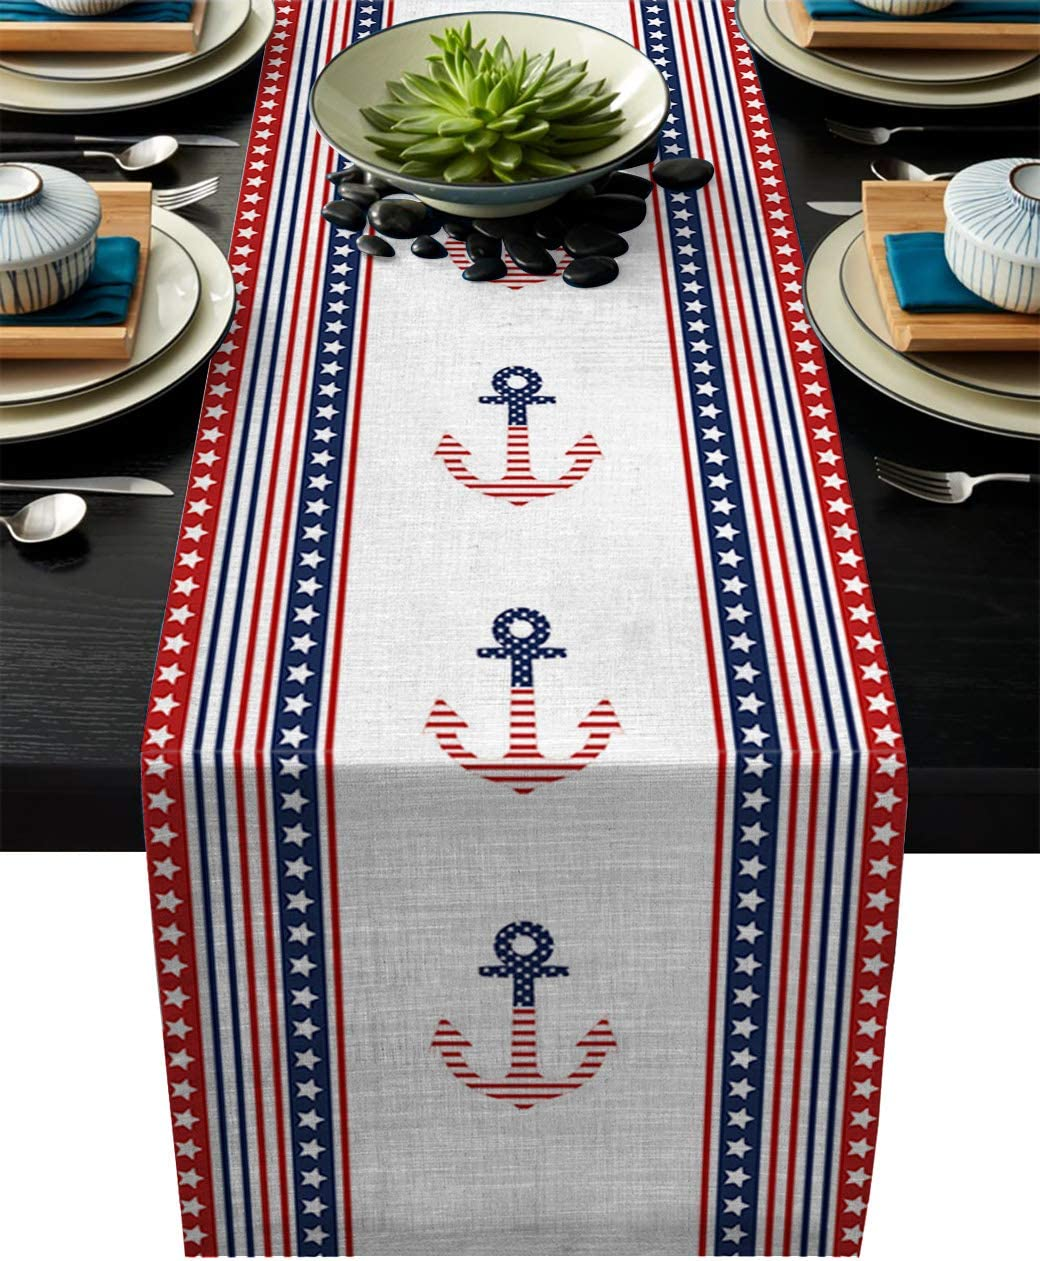 ARTSHOWING Burlap Table Runner 13x90 inches American Flag Table Runners for Dining Buffet Kitchen Table Dresser, Farmhouse, Weddings, Party Decorations - Independence Day Patriot Decor Anchor